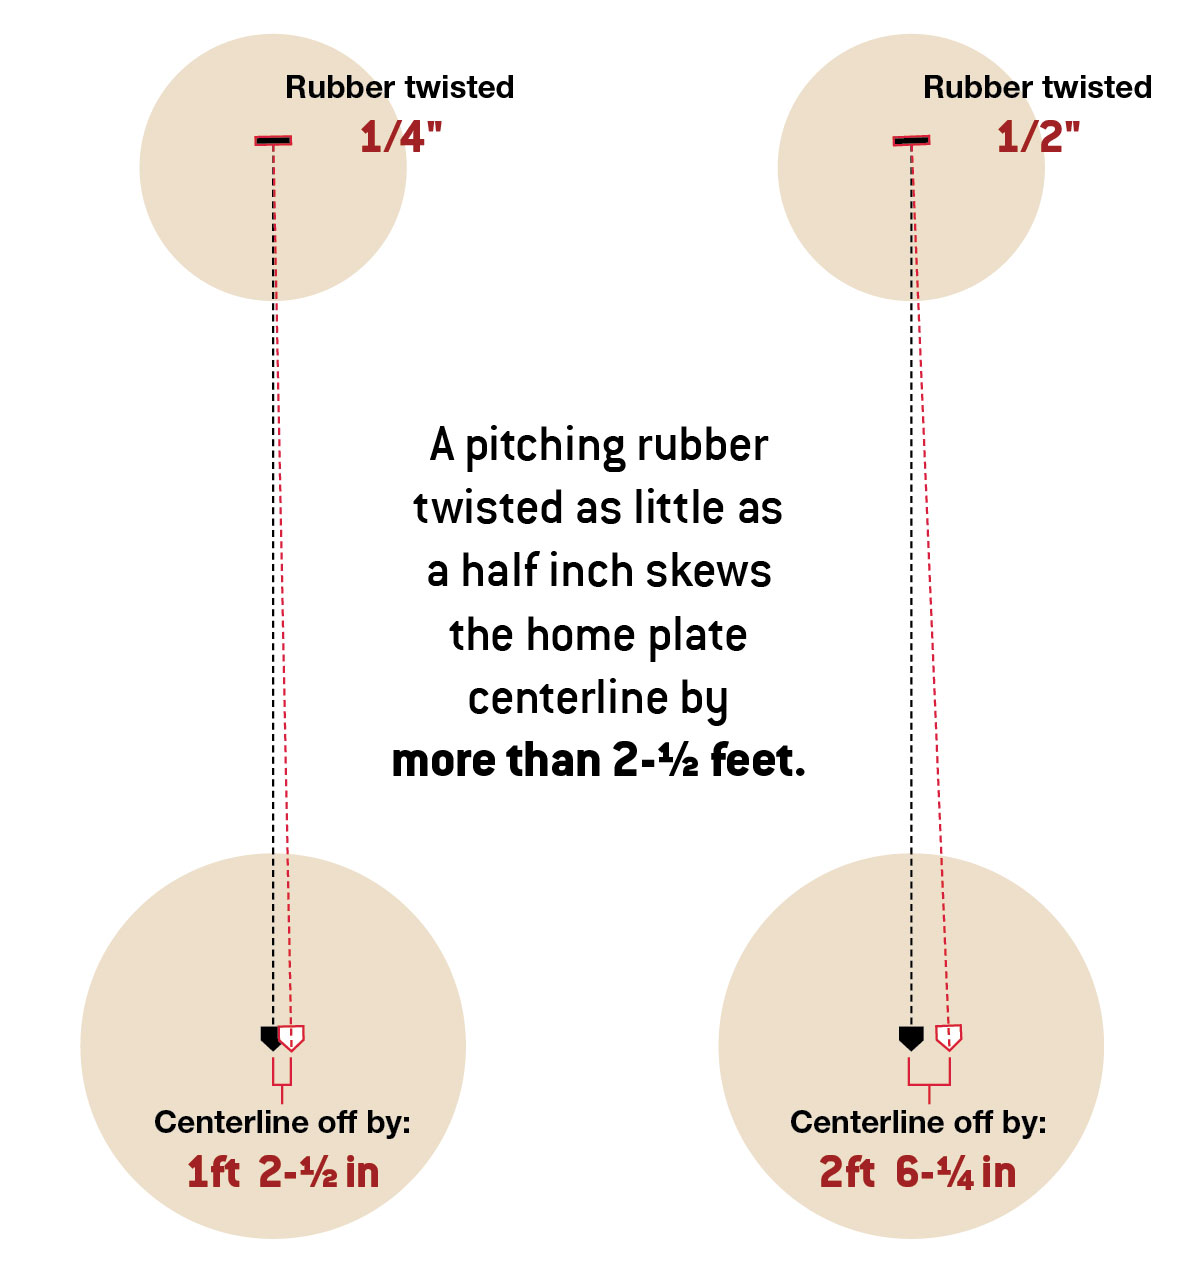 hight resolution of diagram a pitching rubber twisted as little as a half inch skews the home plate